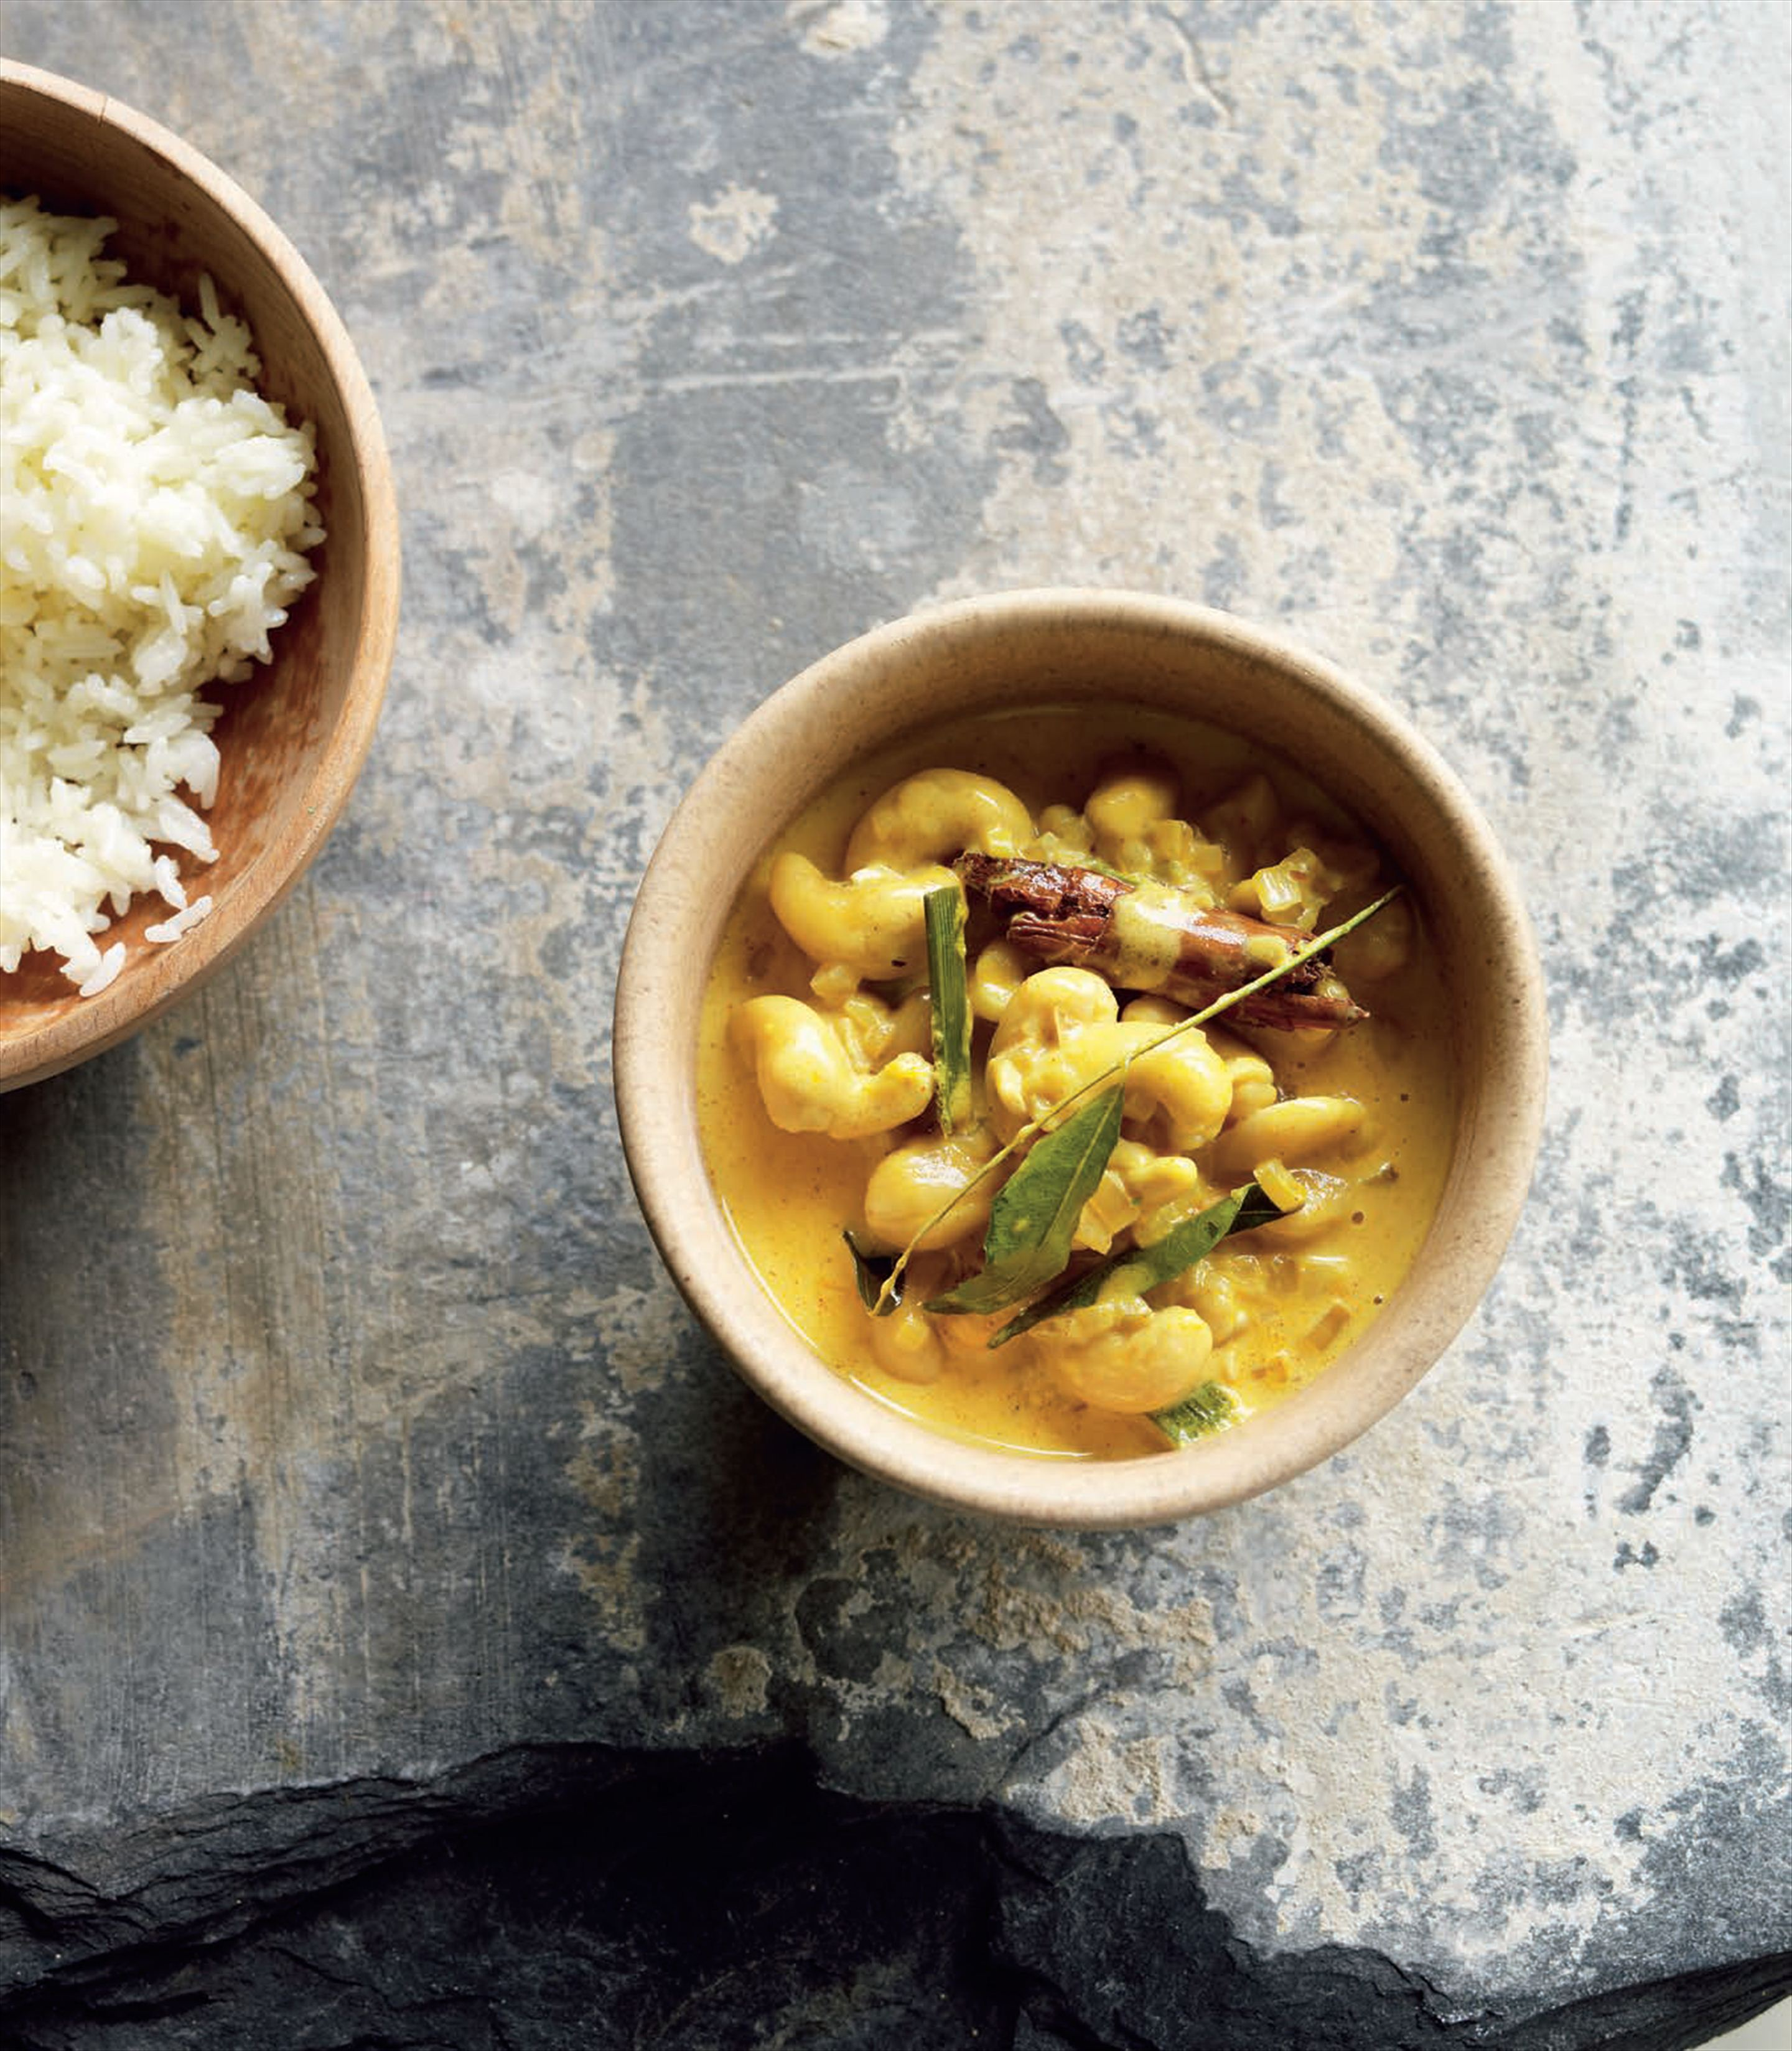 Cashew nut curry